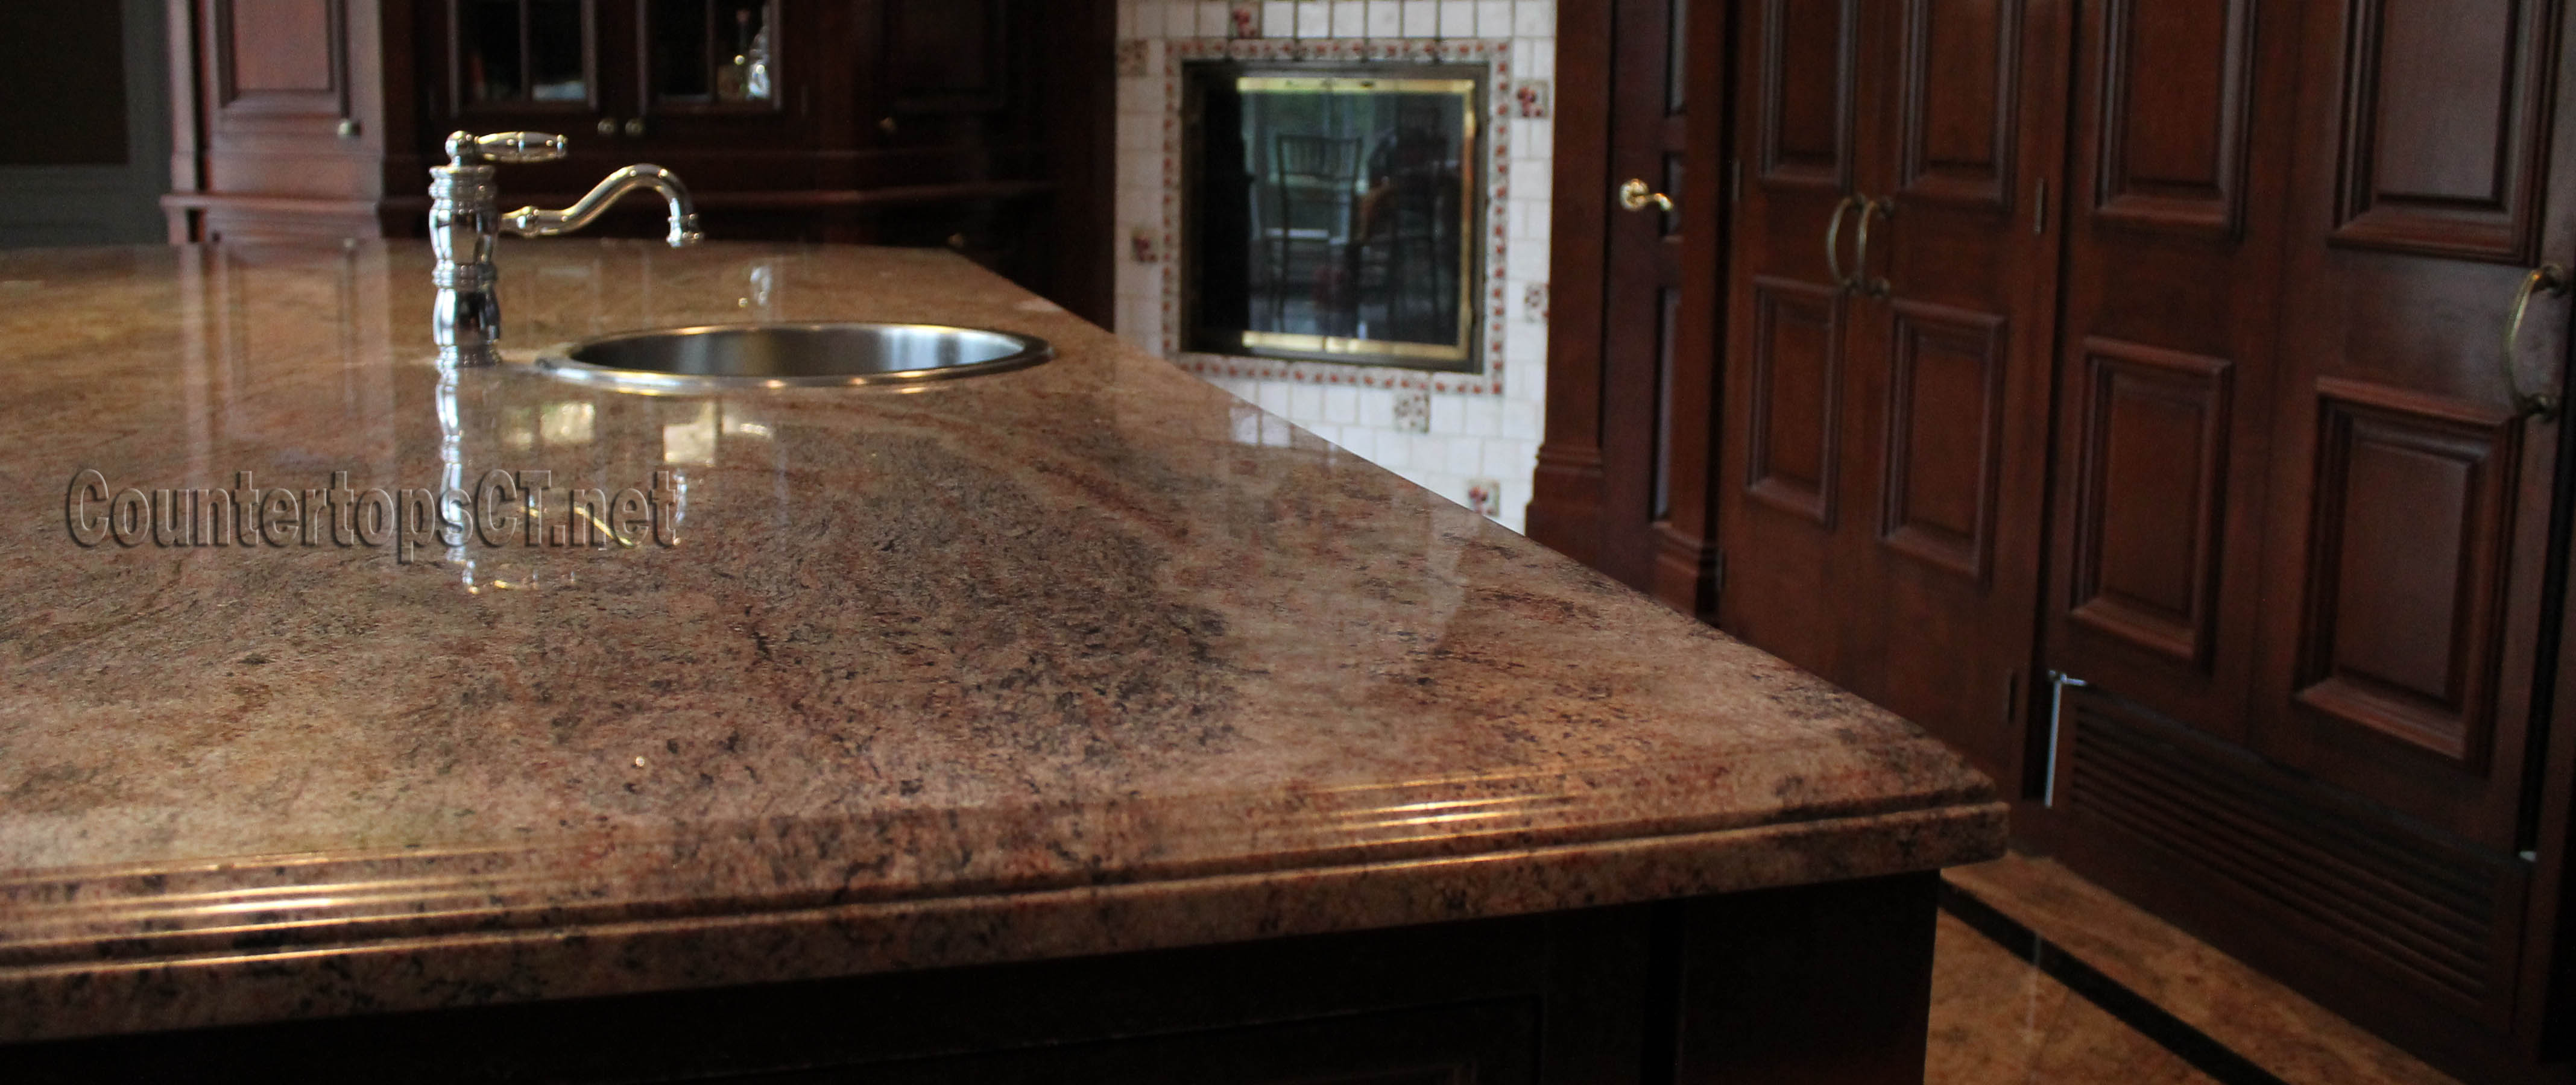 best countertops pictures mill of slabs counter wa choosing countertop in the creek granite